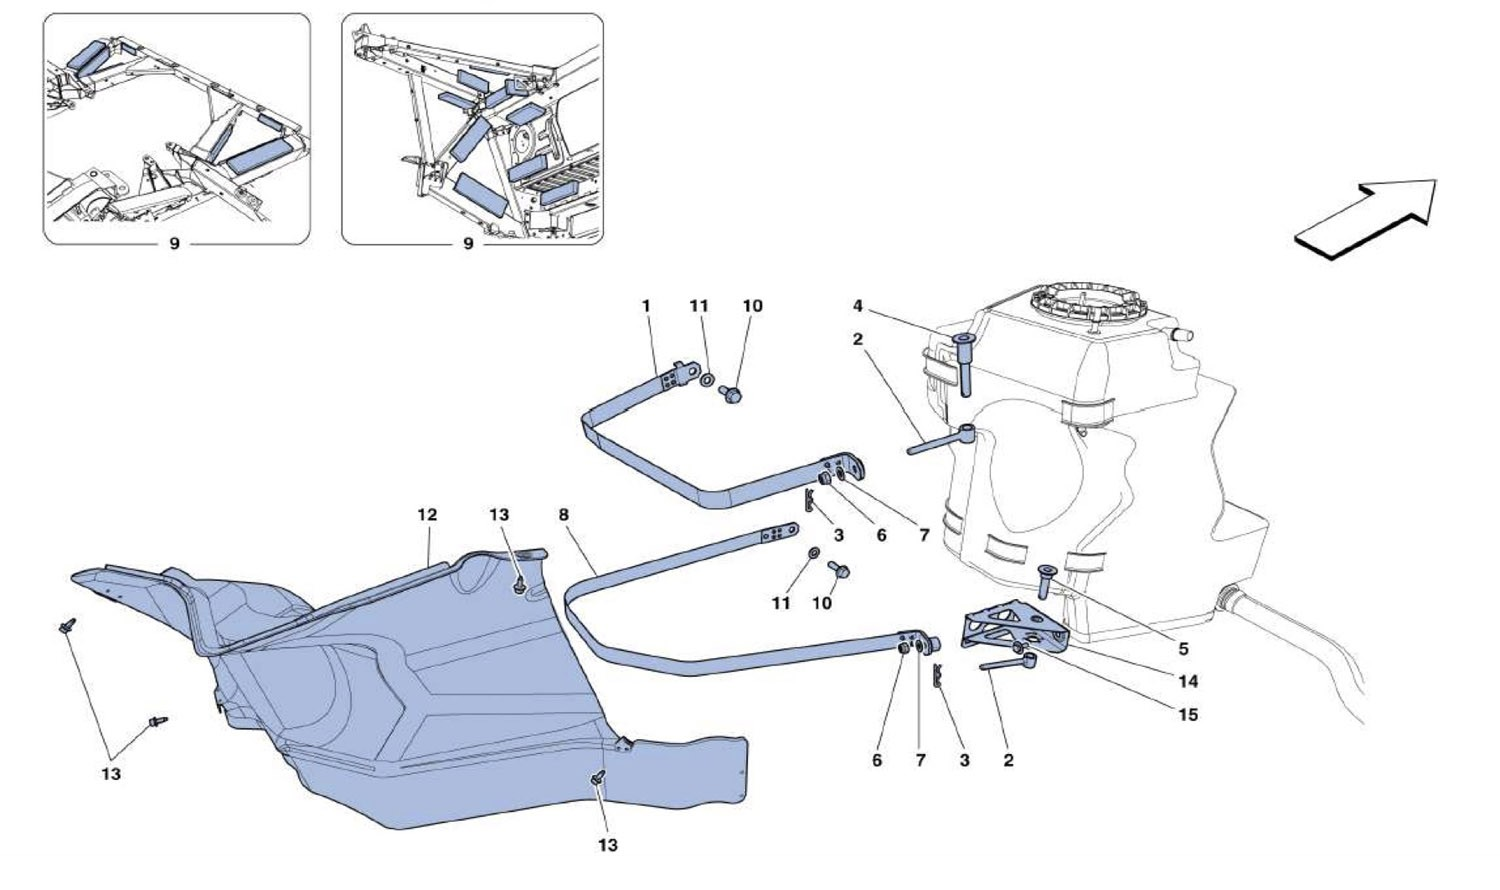 FUEL TANKS - FASTENERS AND GUARDS